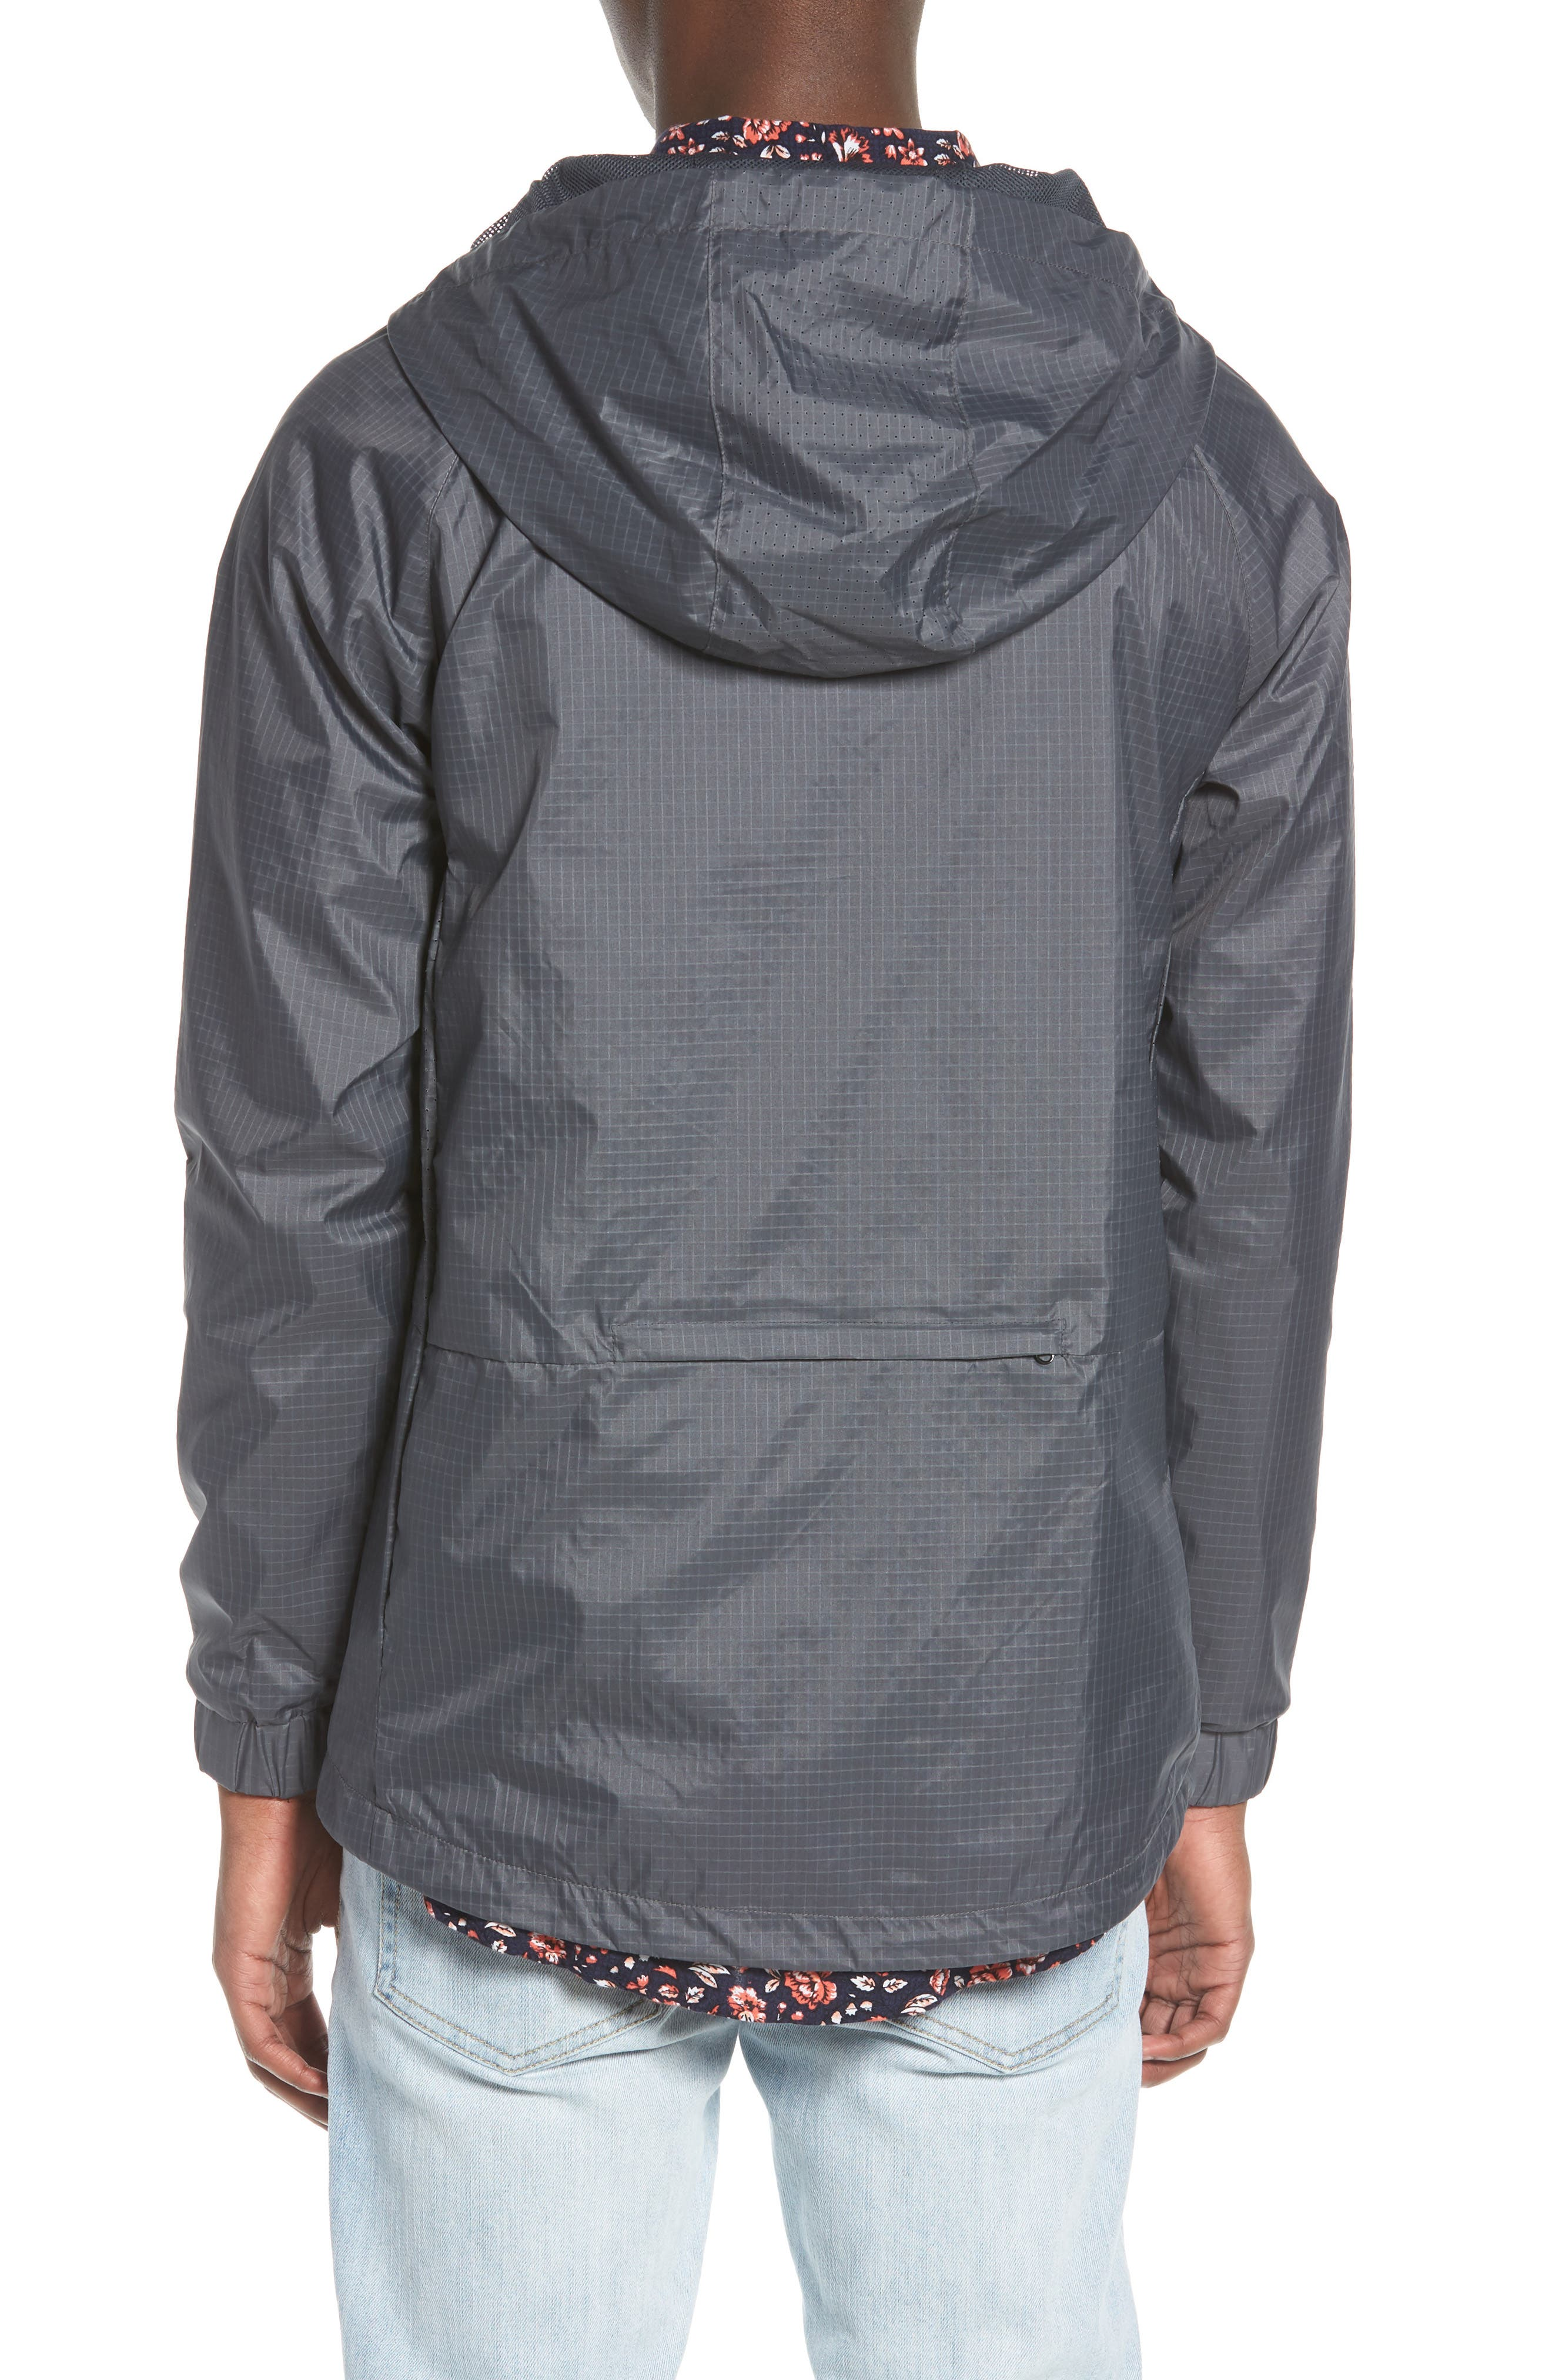 NCT Bezel Packable Anorak,                             Alternate thumbnail 2, color,                             Asphalt